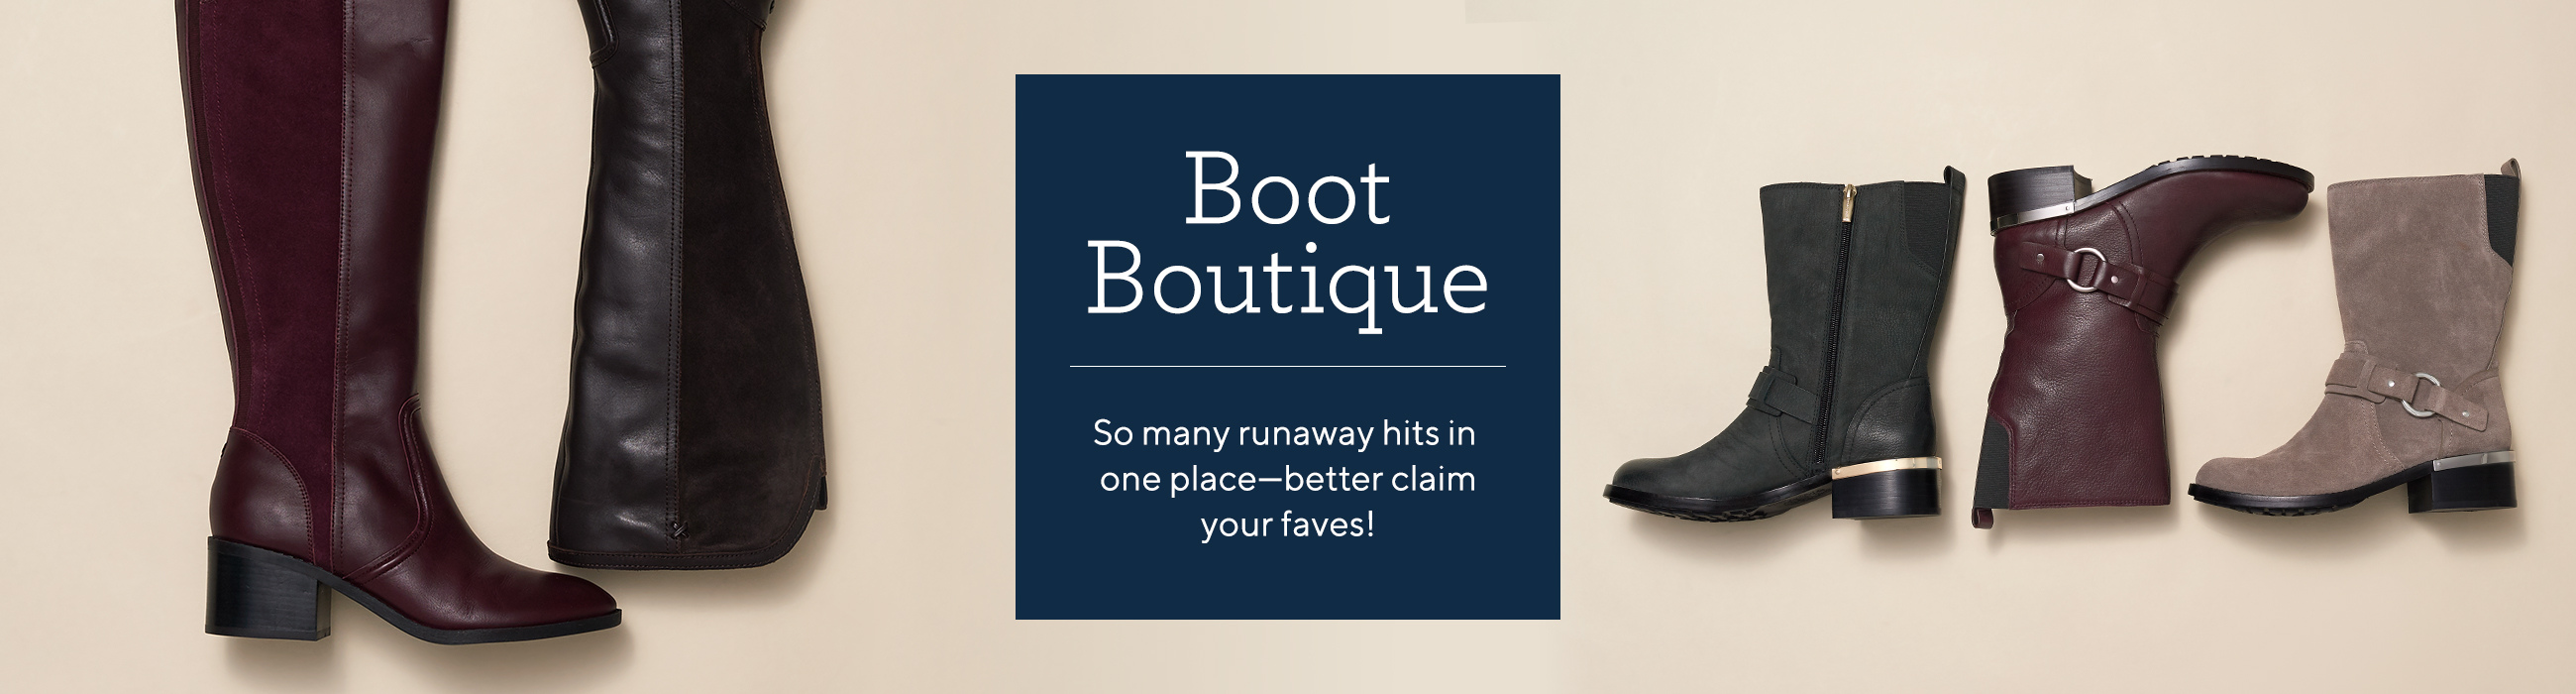 Boot Boutique  So many runaway hits in one place—better claims your faves!